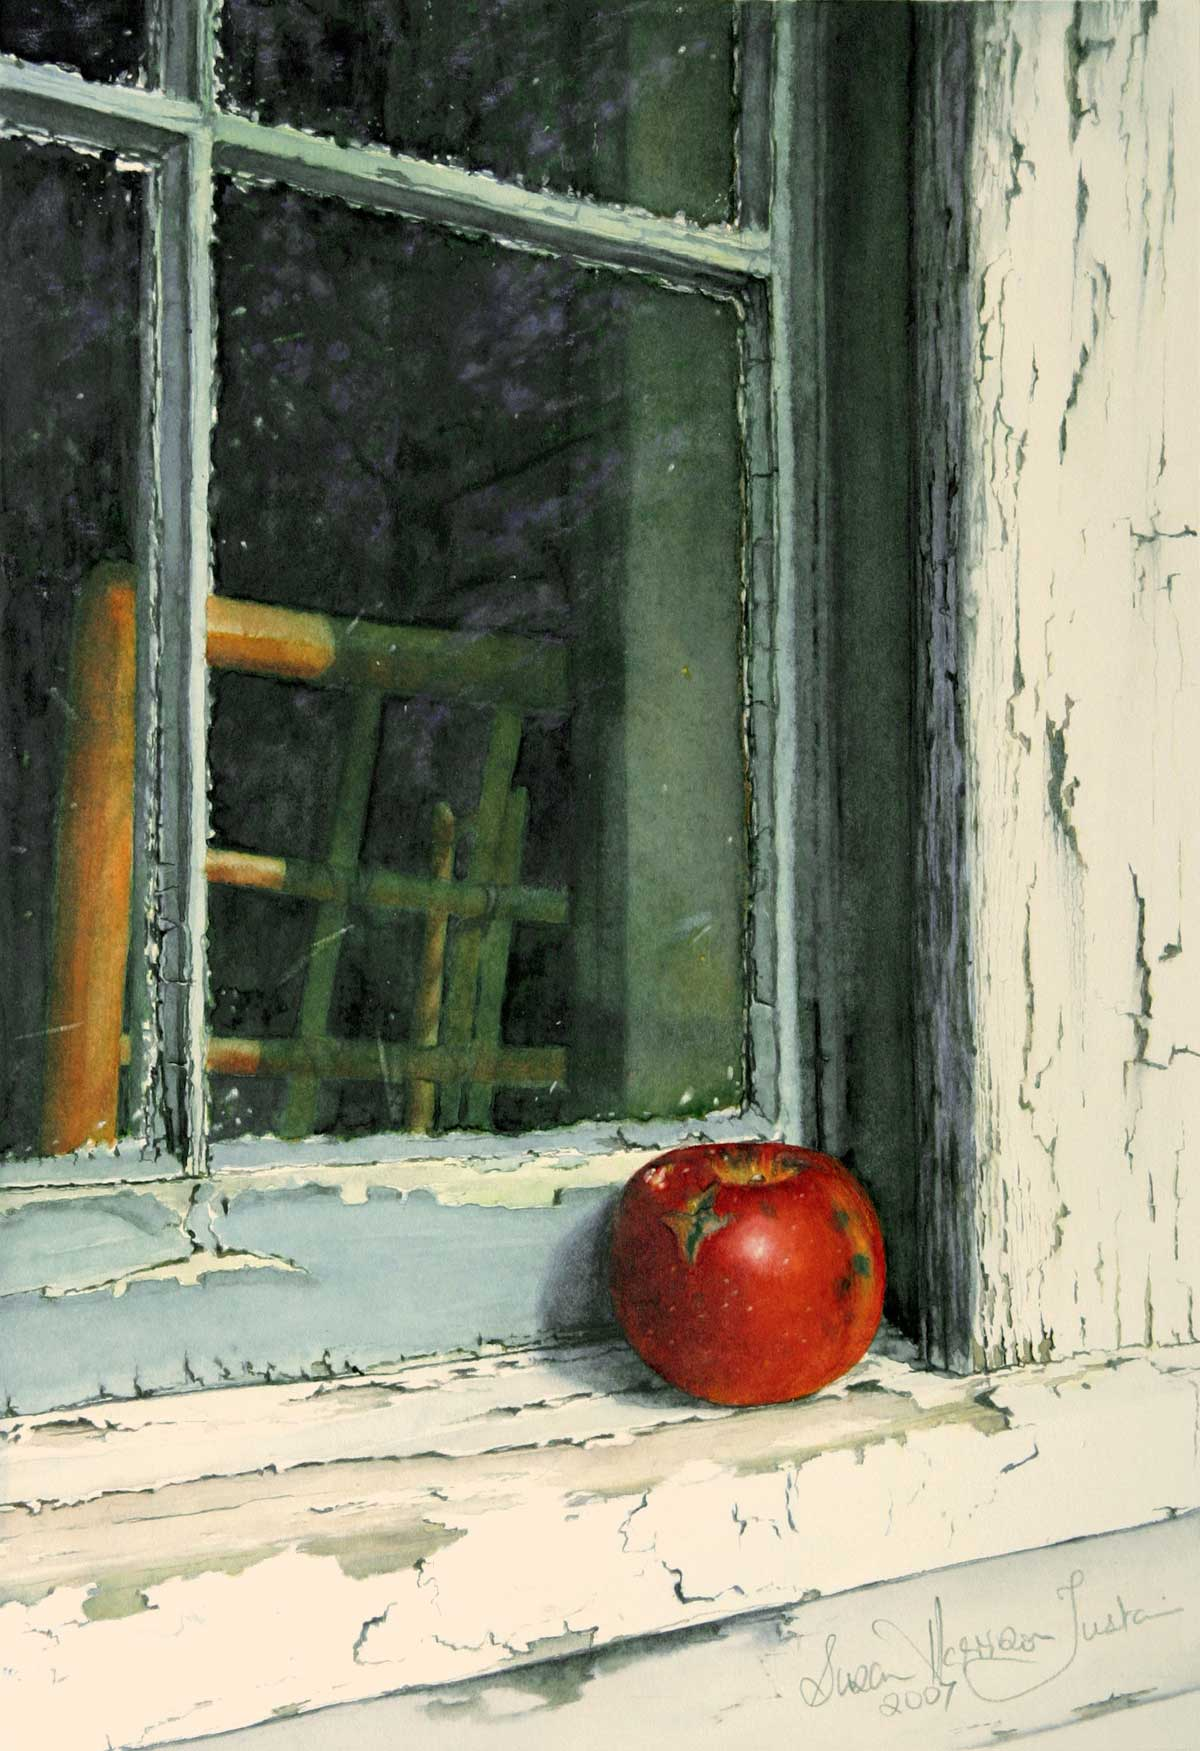 Watercolor painting of Red apple on window sill of peeling paint